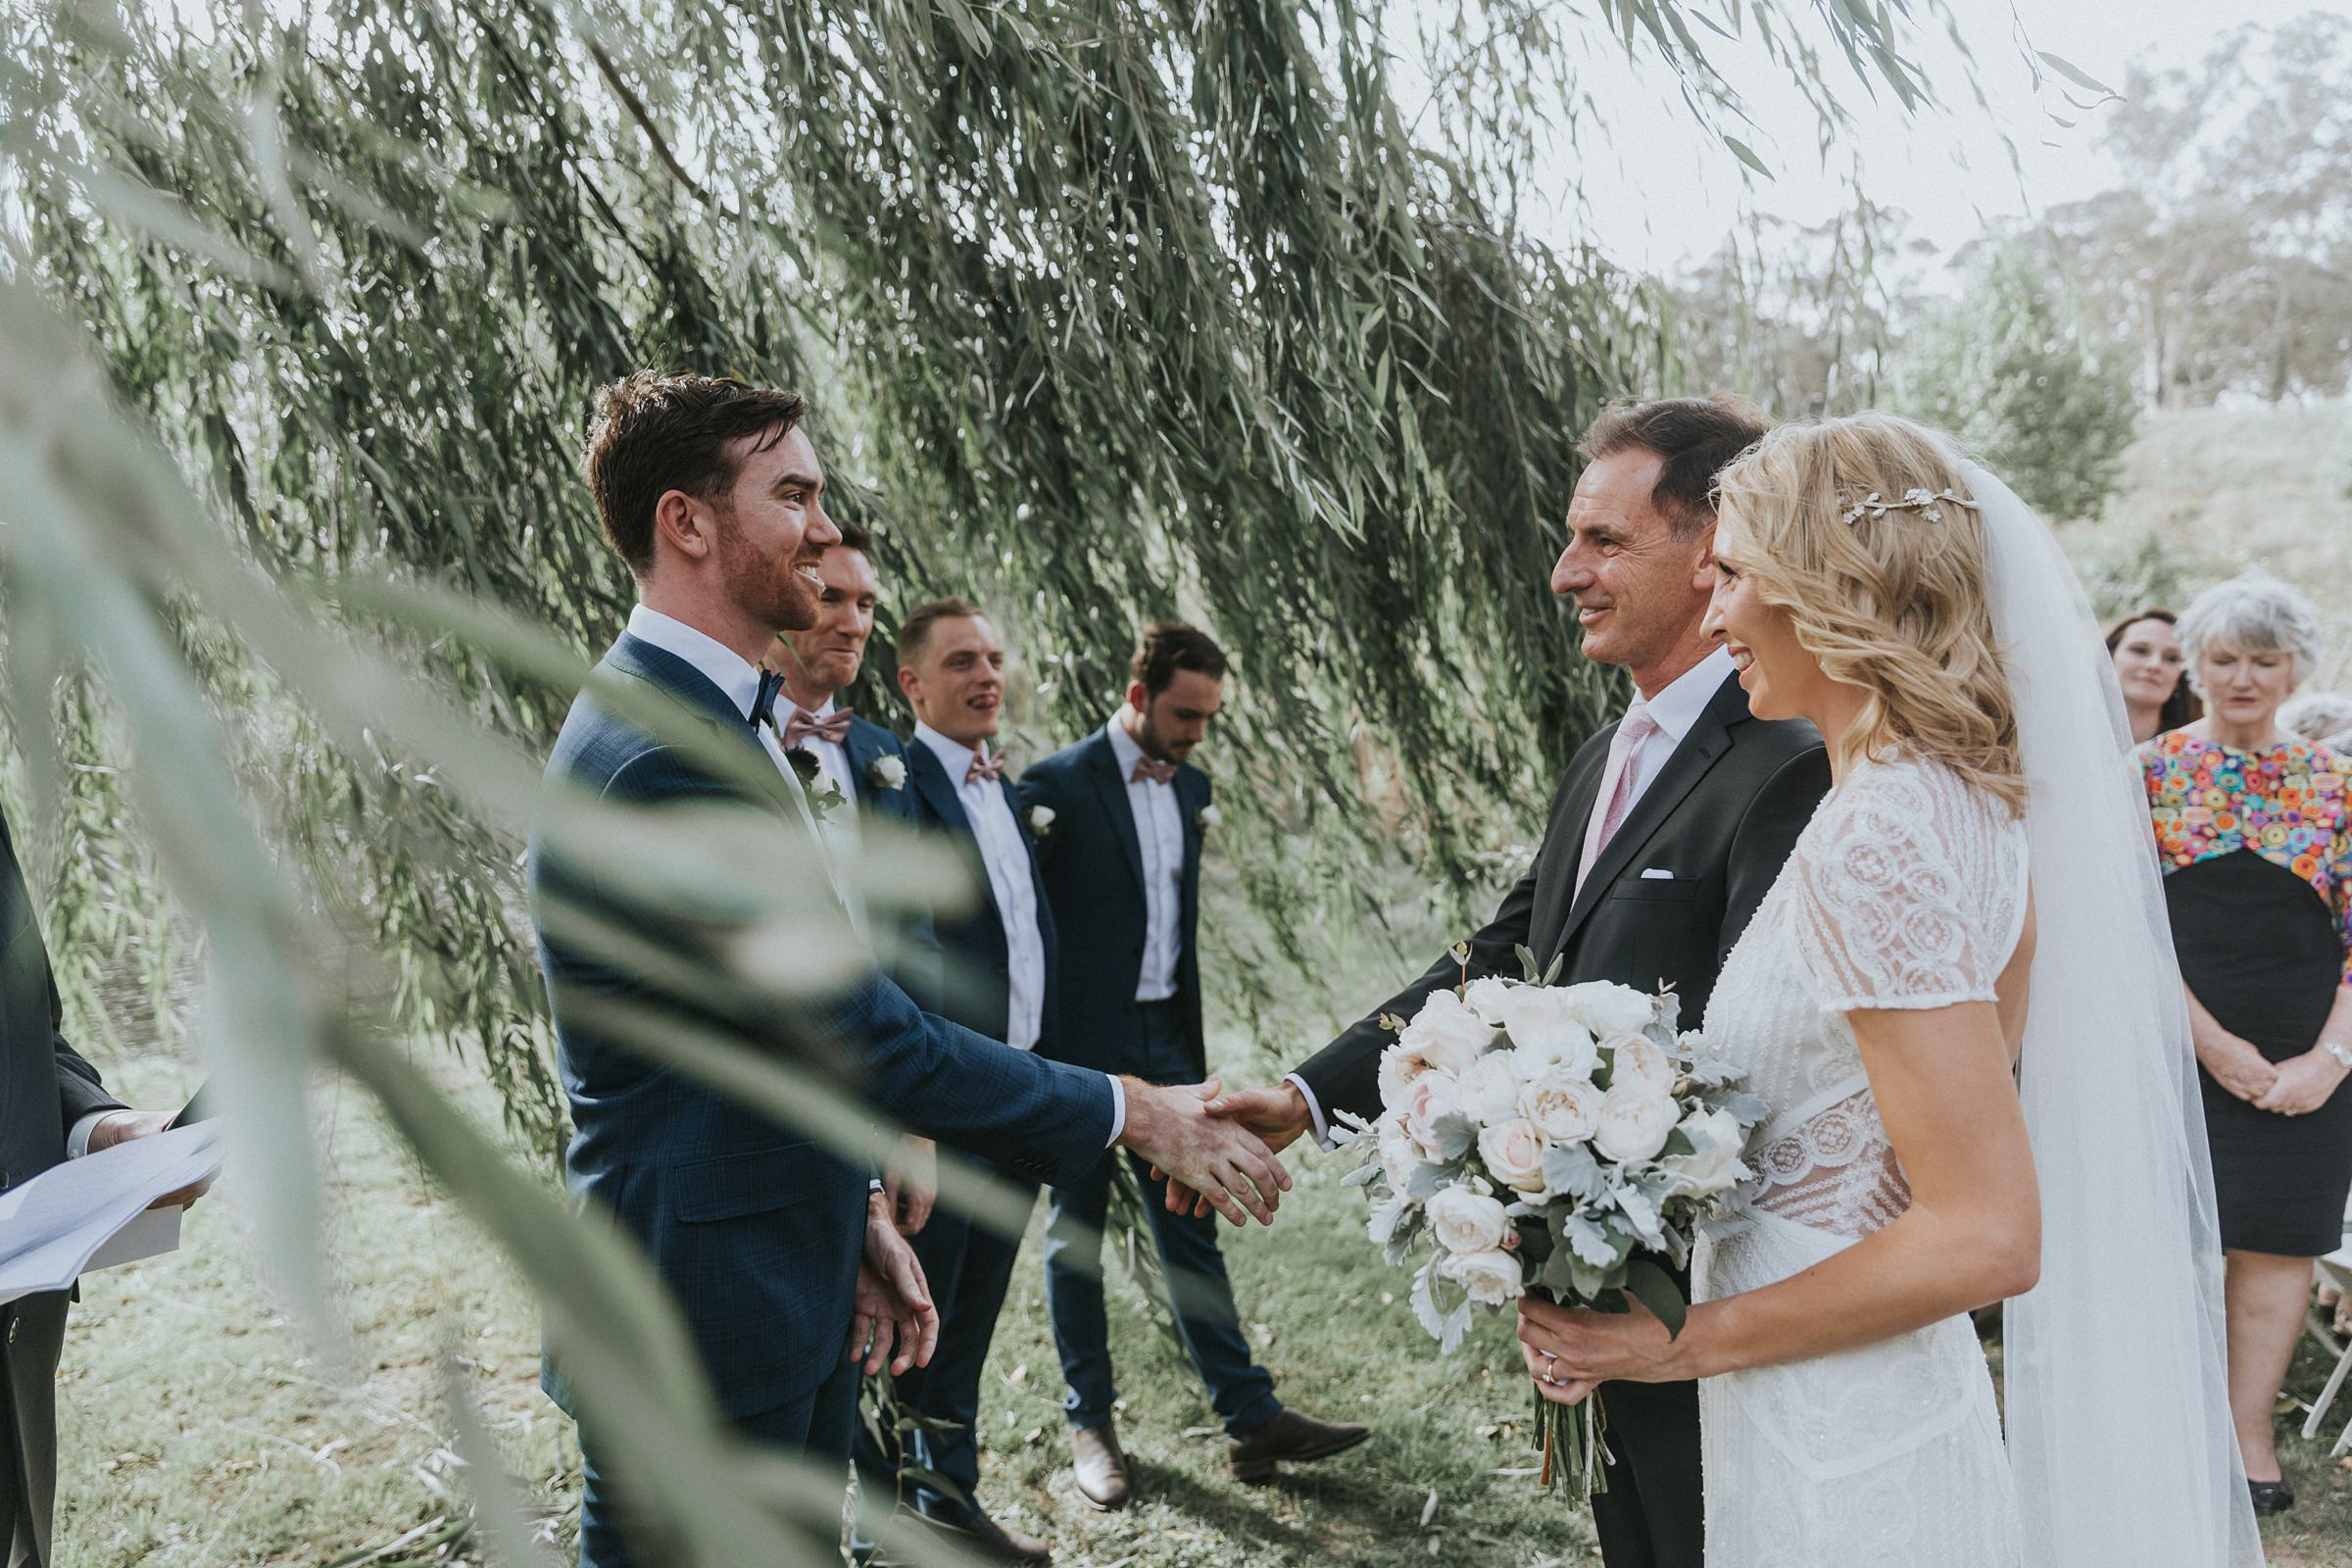 mali brae farm wedding ceremony